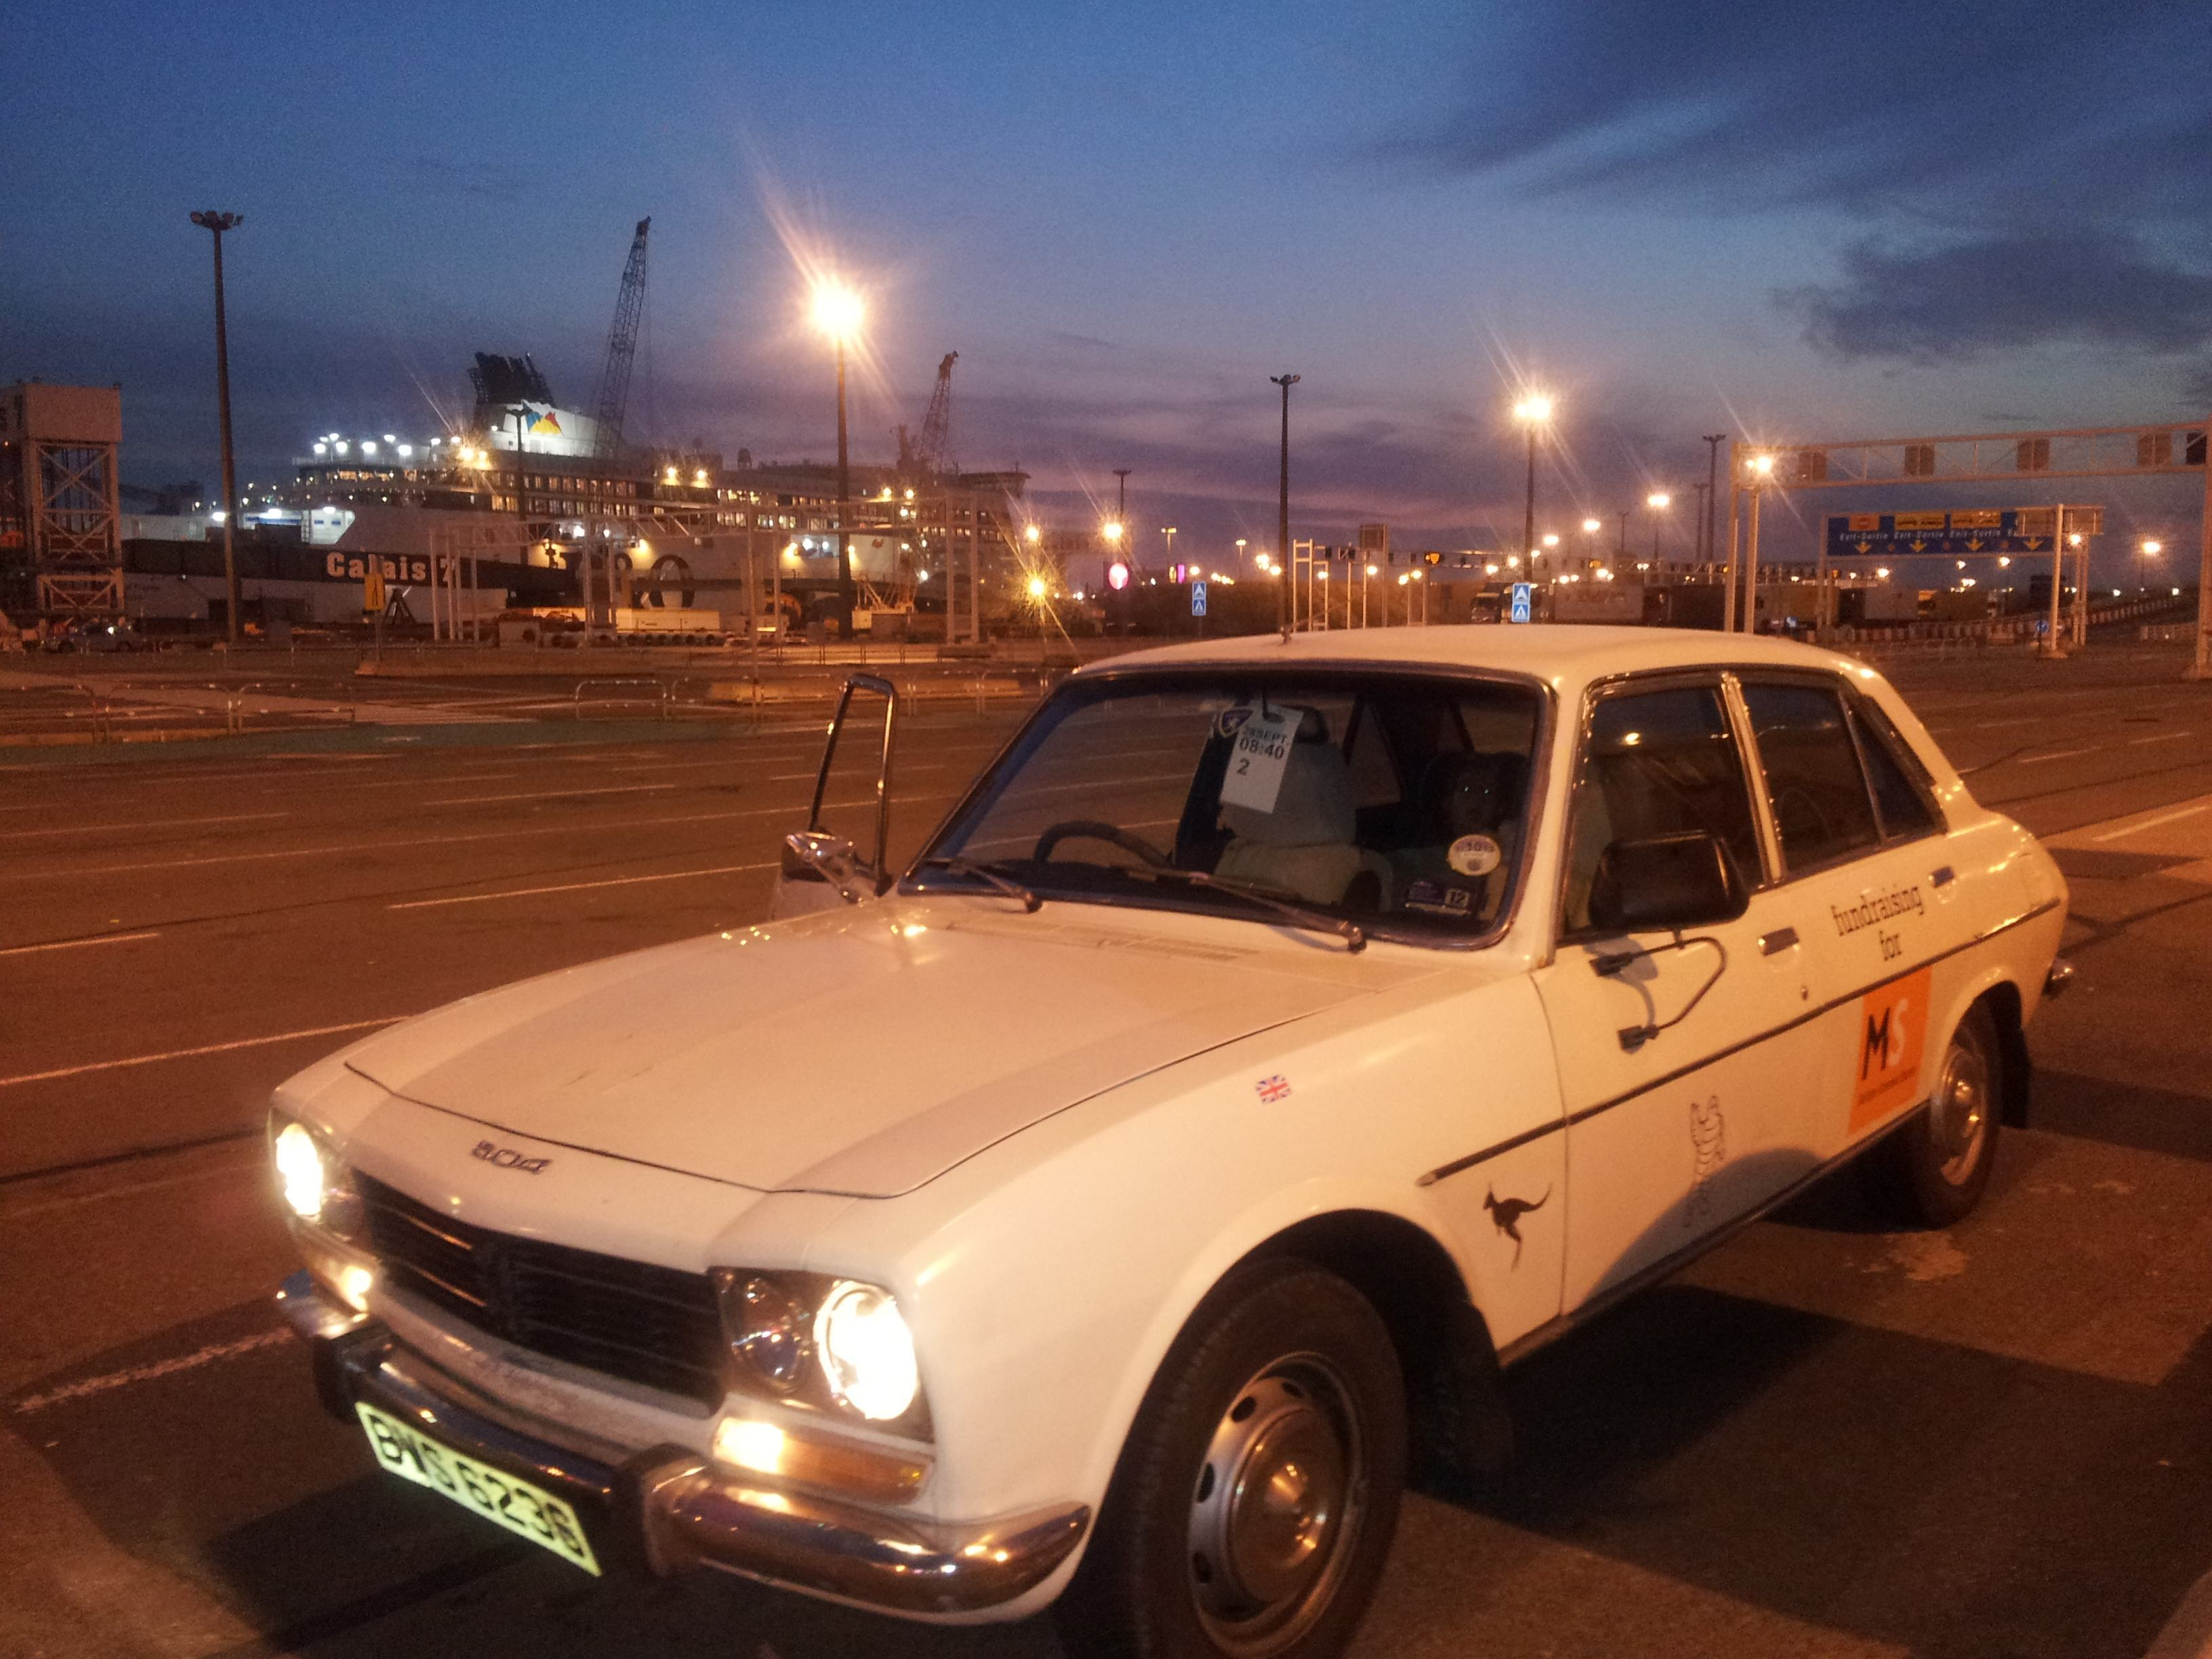 Clancy The Peugeot 504 With 1 Million Km On The Clock Living La